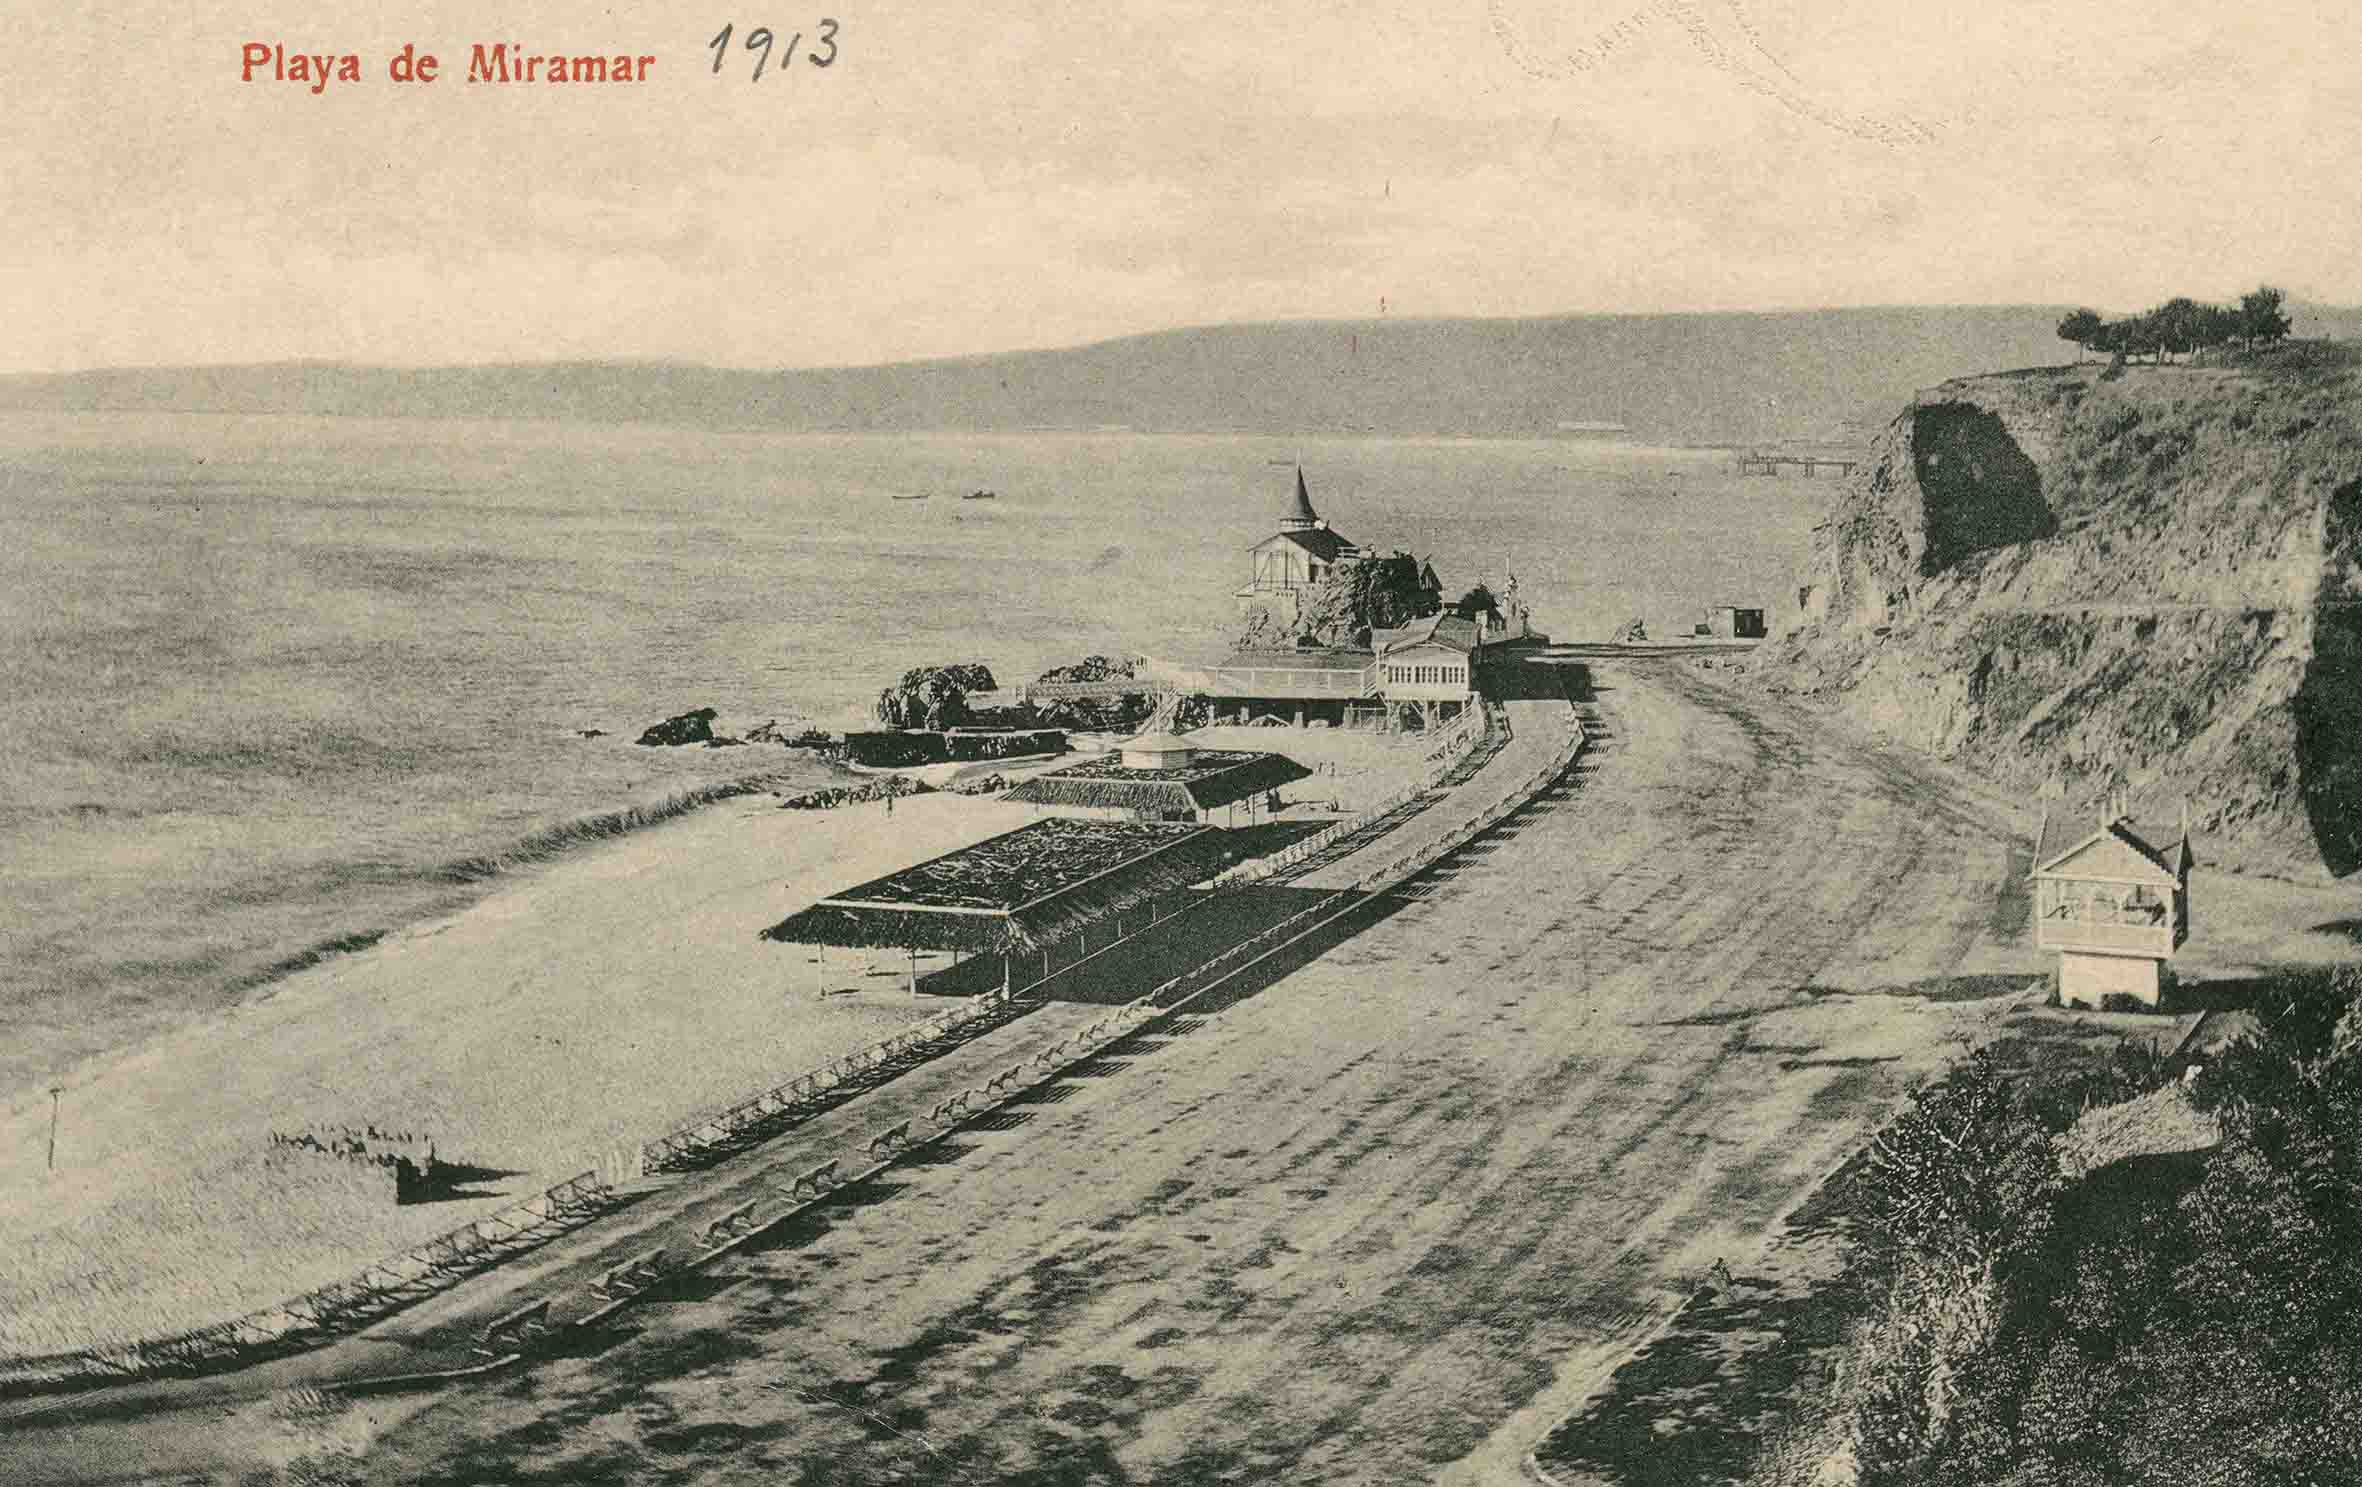 Enterreno - Fotos históricas de chile - fotos antiguas de Chile - Playa Miramar de Viña del mar en 1913